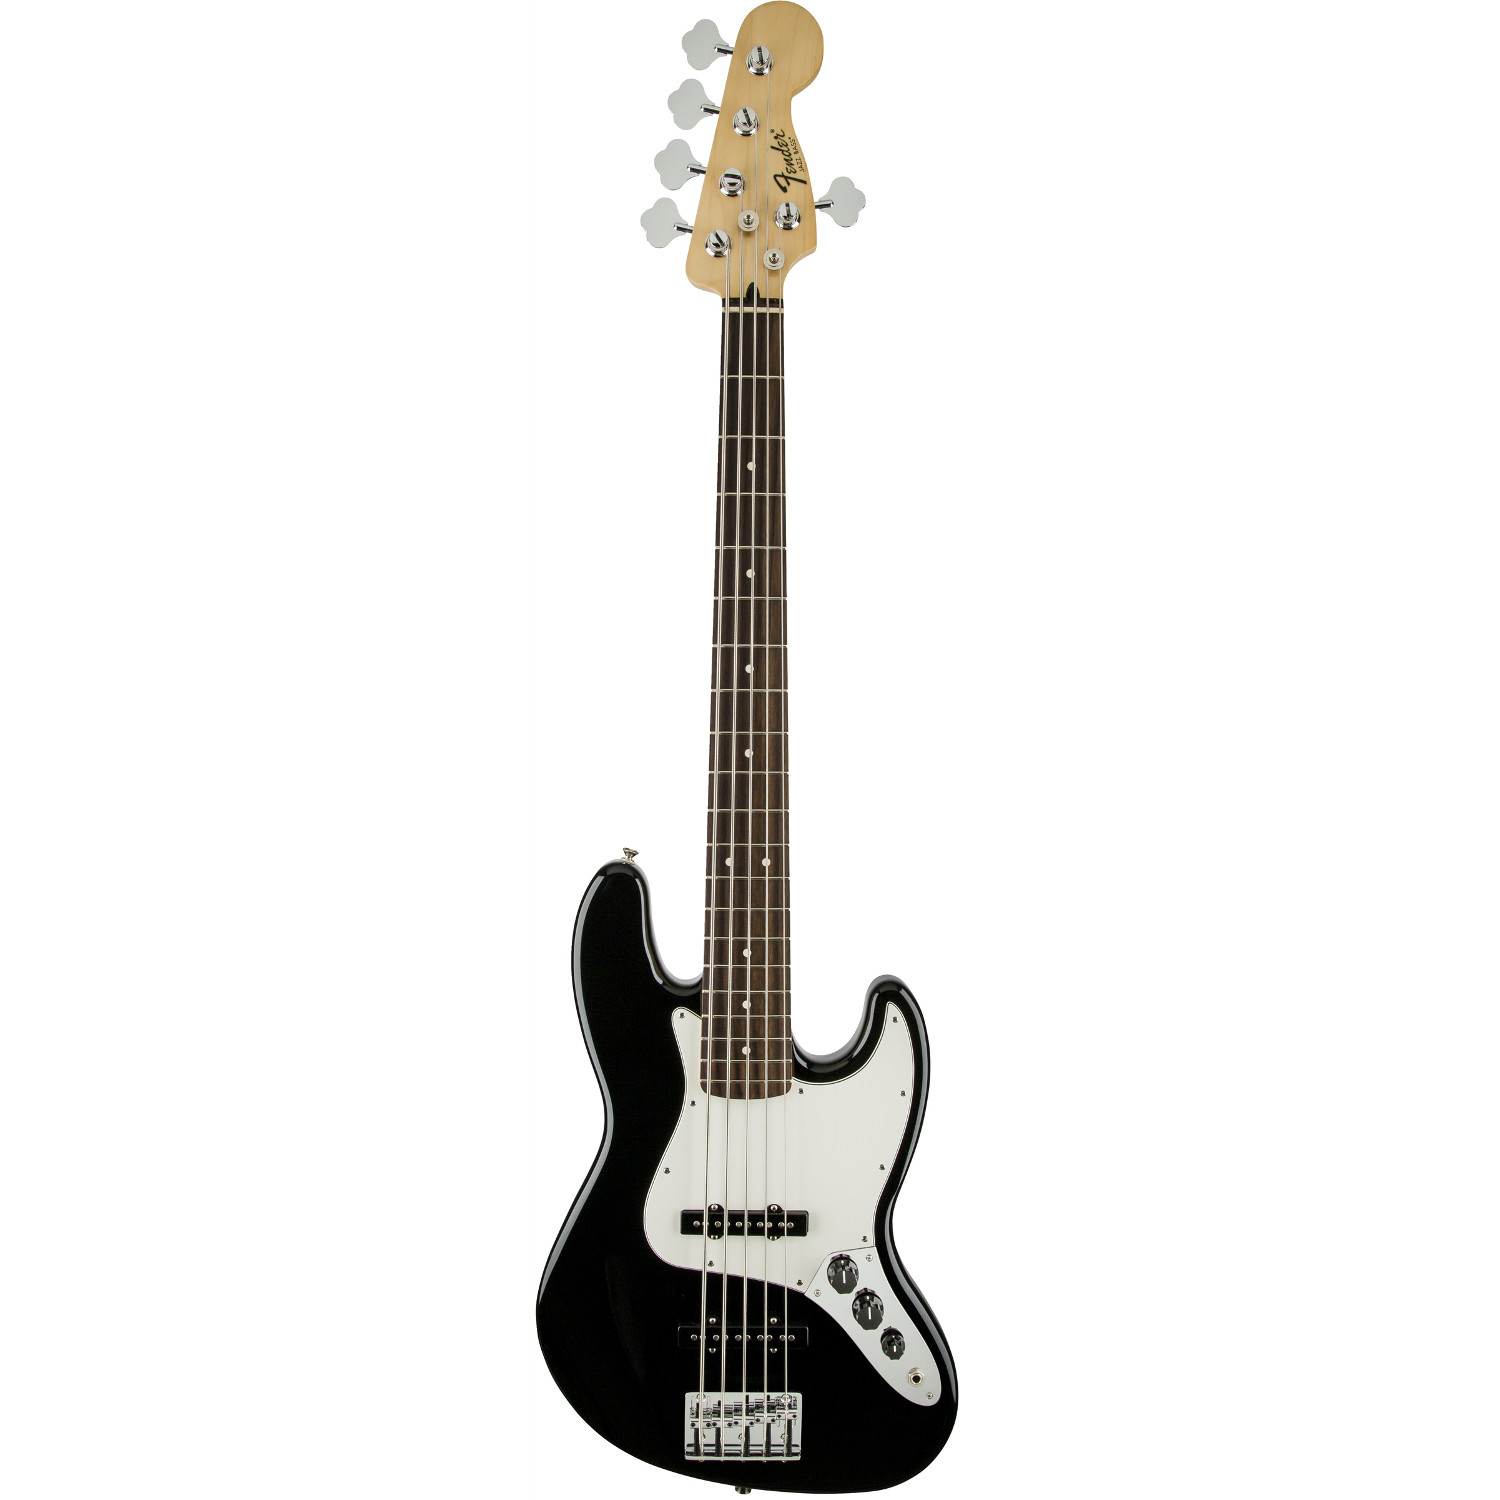 Fender Standard Jazz Bass V Black PF E Bass, 5 saitig